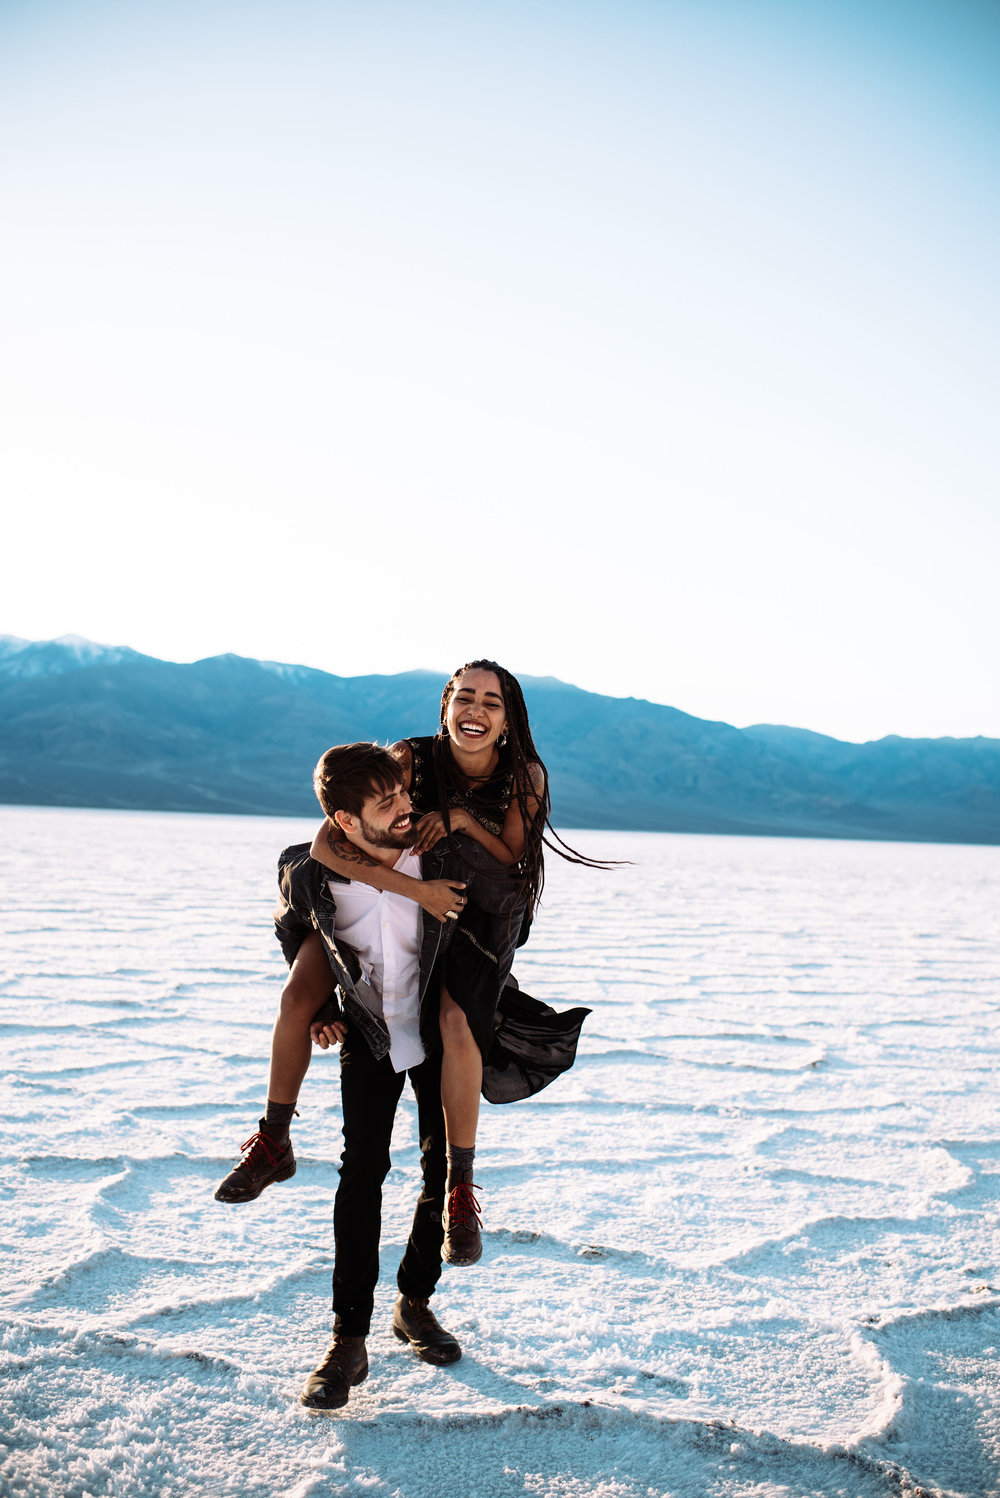 badwater basin elopement - death valley wedding - california wedding photographer - destination wedding photographer - north carolina wedding photographer - three region photography